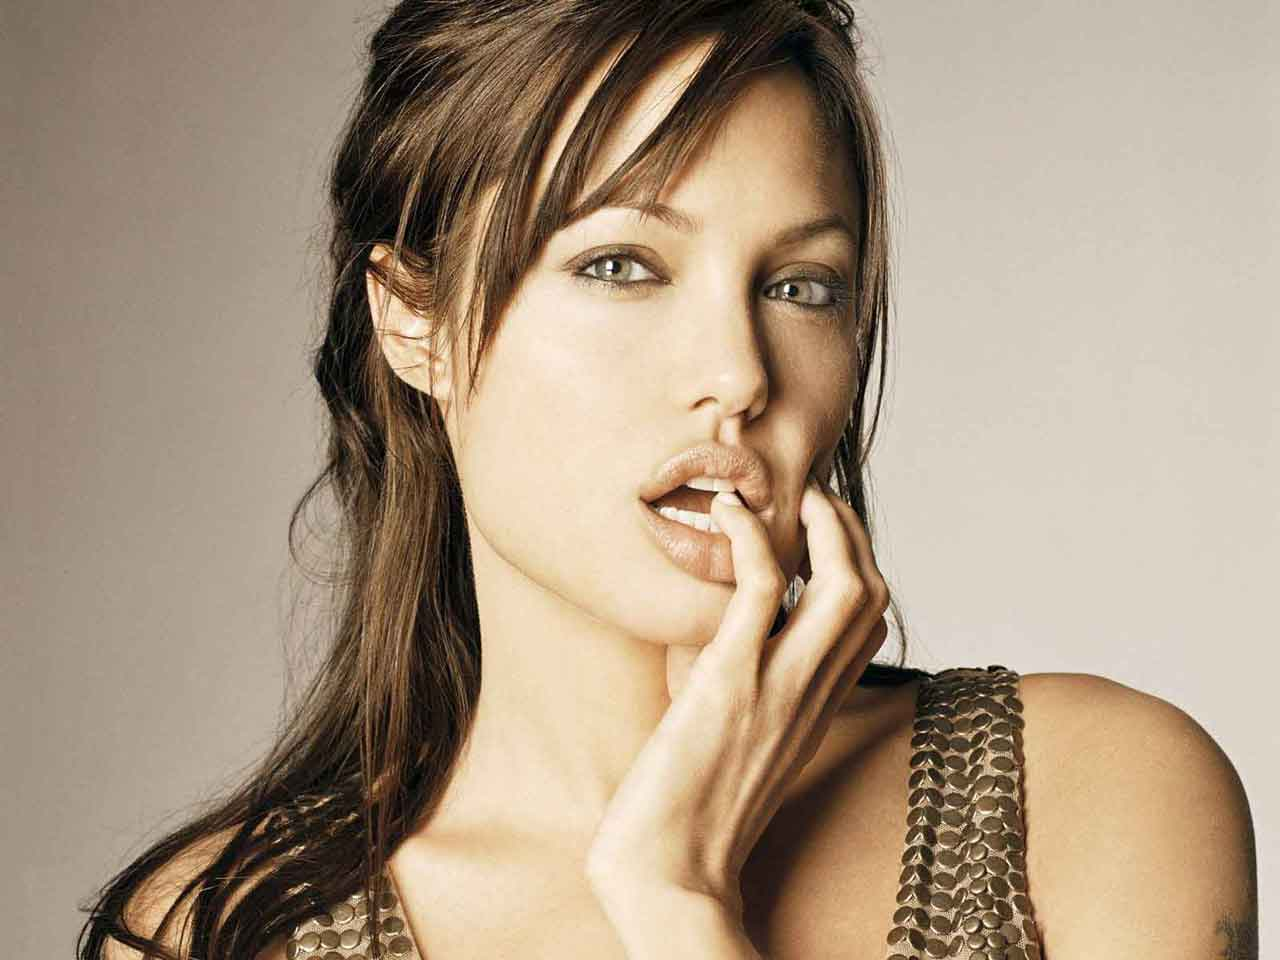 Sexiest And Hottest Hollywood Actresses